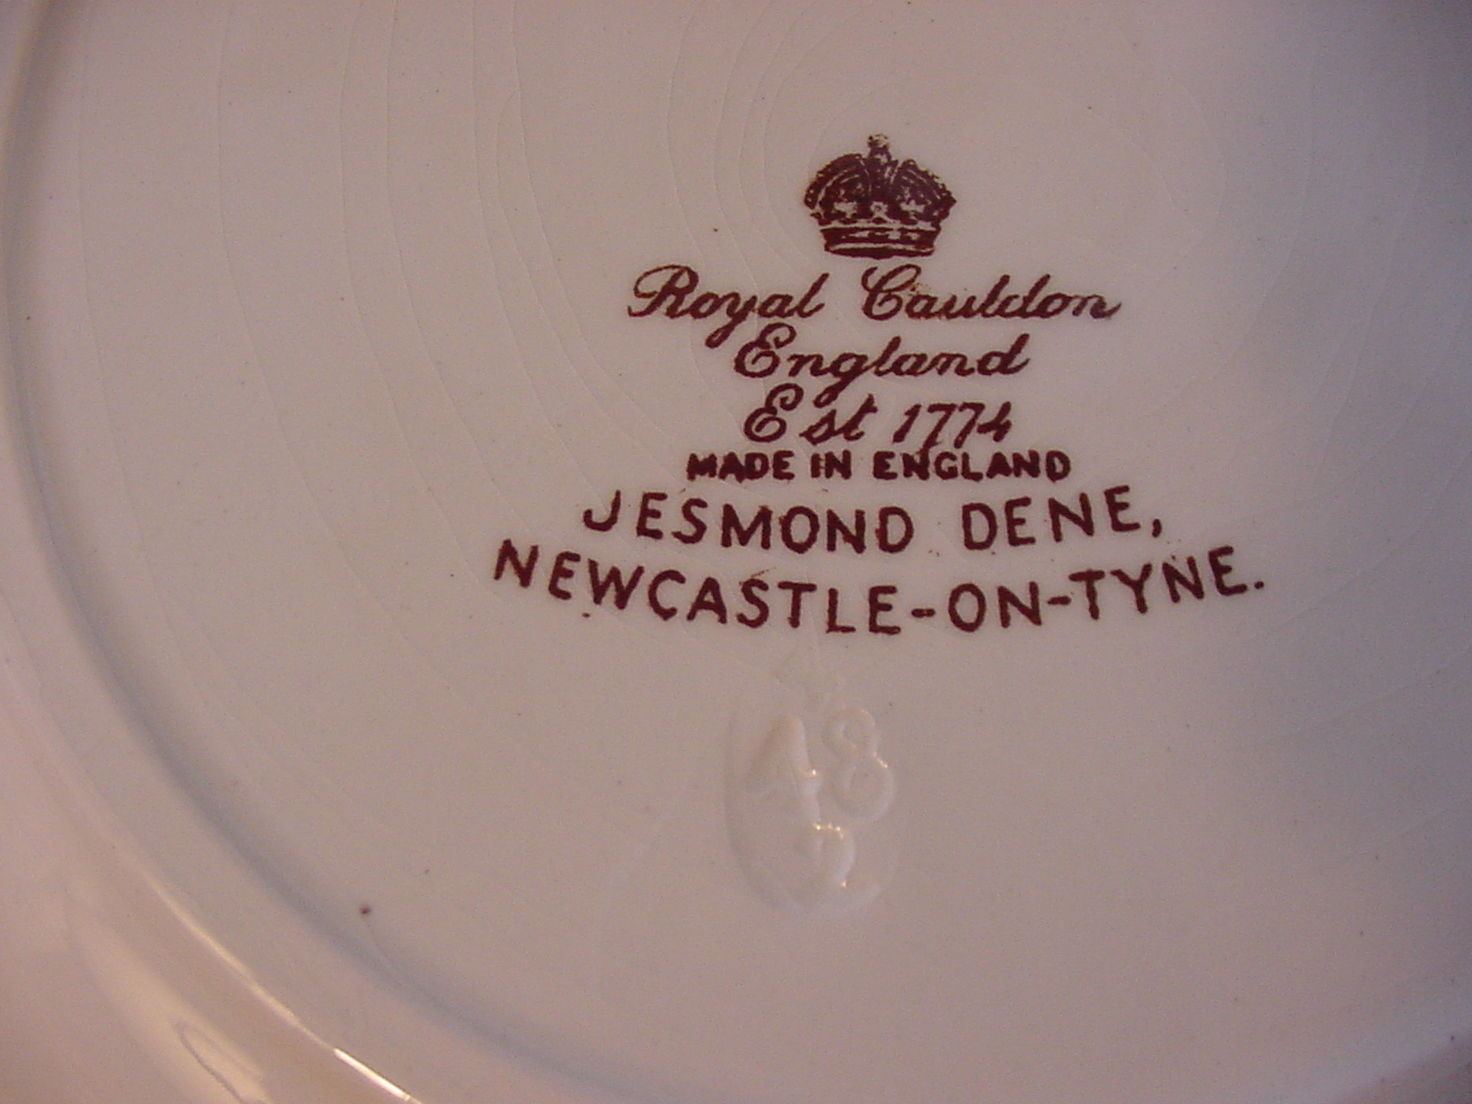 "Royal Cauldon England Jesmond Dene Newcastle-on-Tyne Plate, 9 3/4"", brown/ivory"